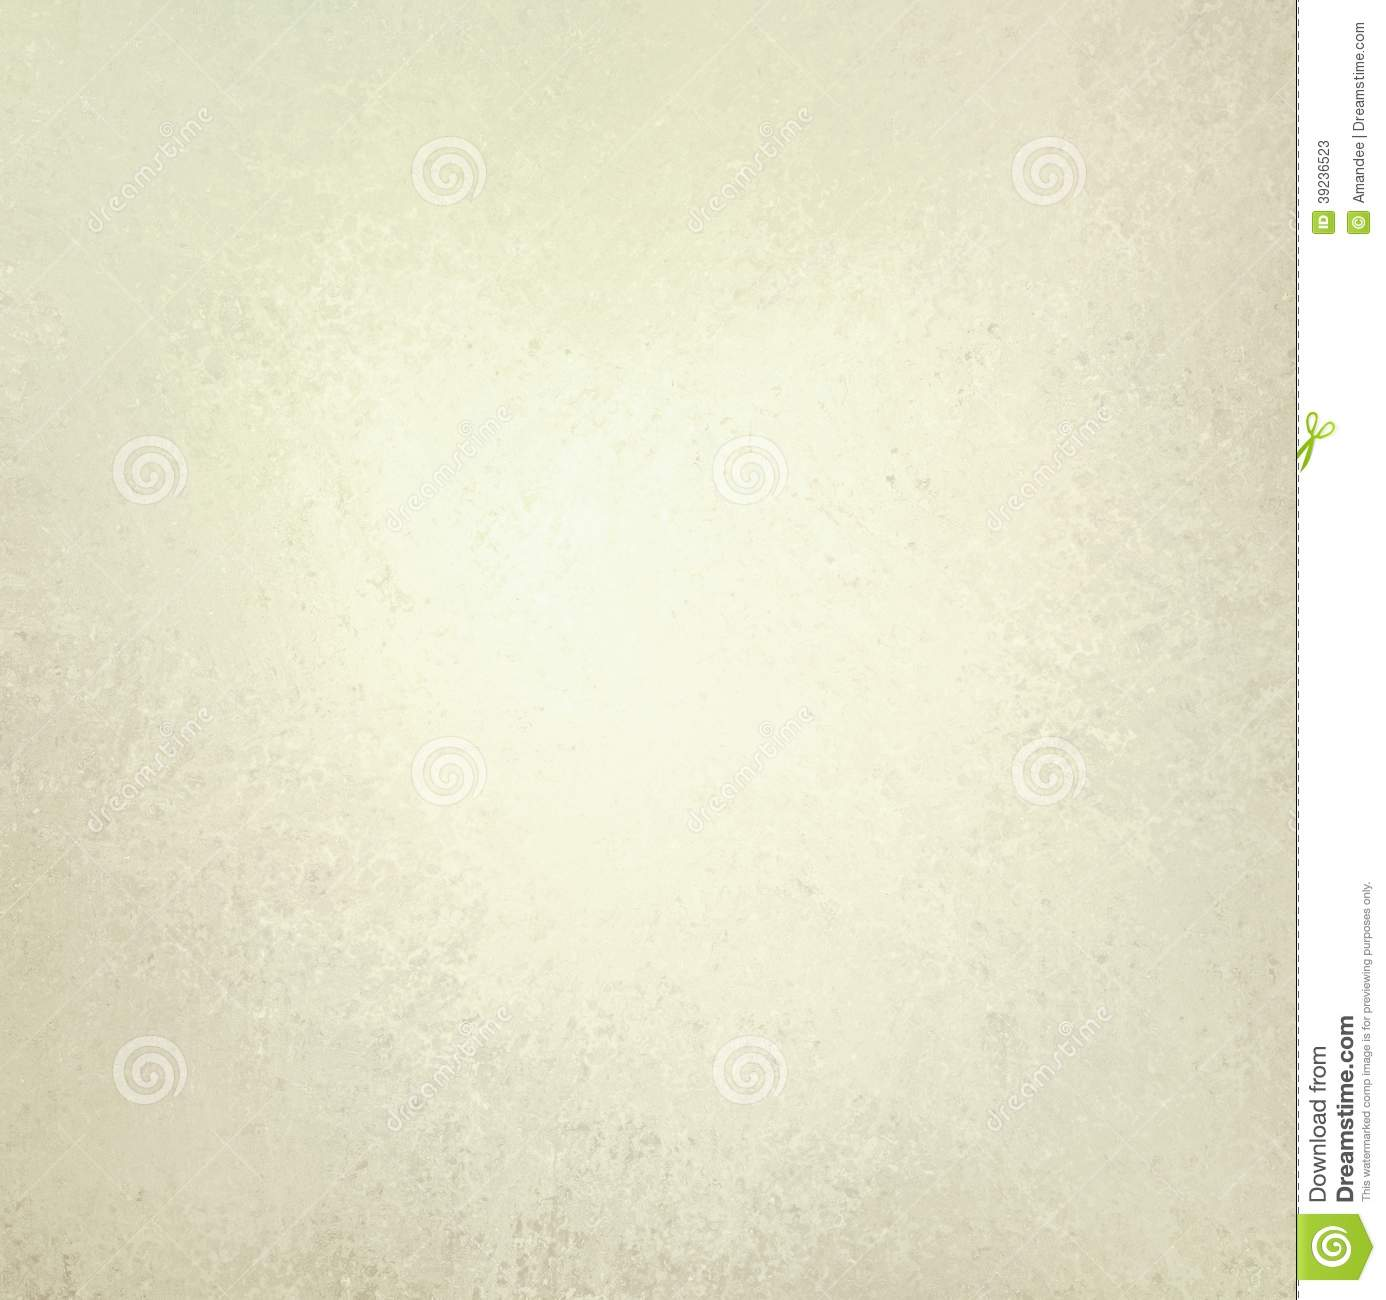 Off White Background With Faint Vintage Texture Stock Photo 39236523